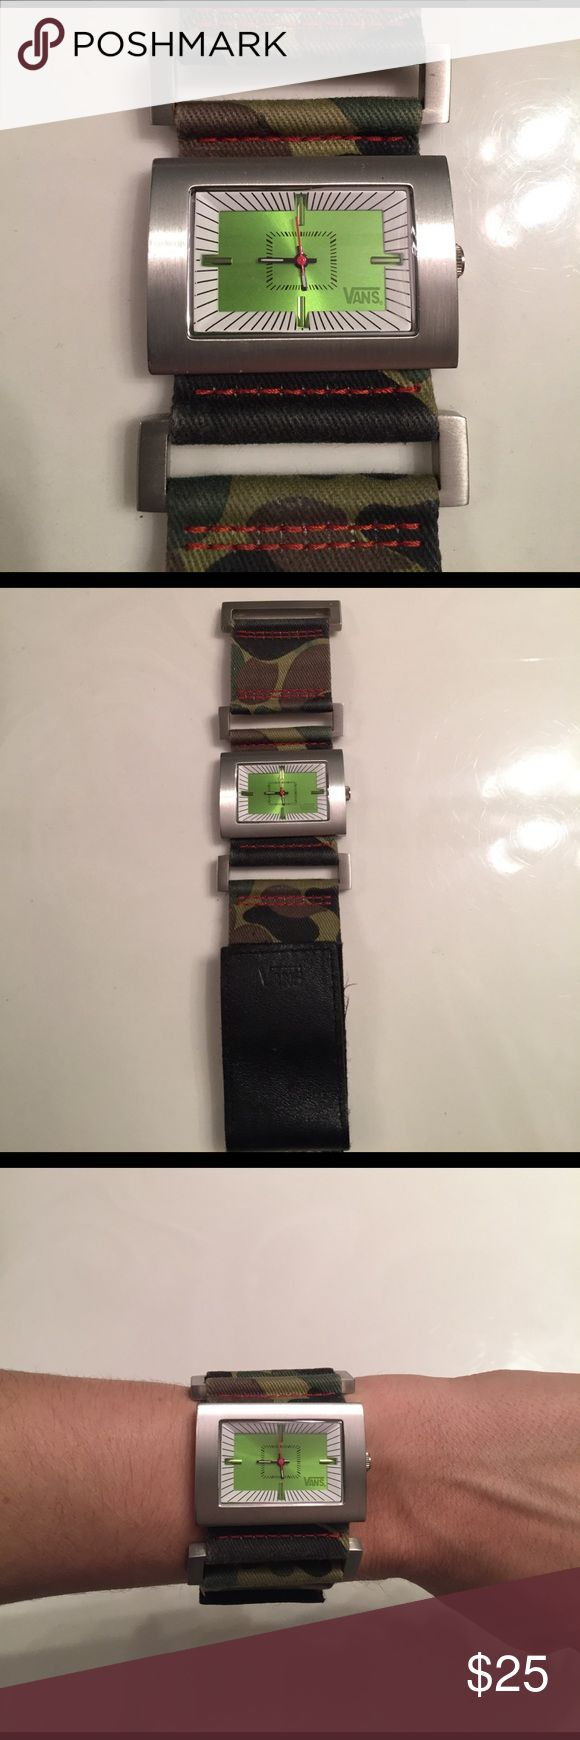 Vans Camo red detail lime green face watch Super rad watch! I'm a nurse and wound up using a Nixon with a micro hand. Has not been worn much. Genuine leather band with Velcro strap for the perfect fit! Needs a trip to the mall or shop for a battery! Vans Accessories Watches